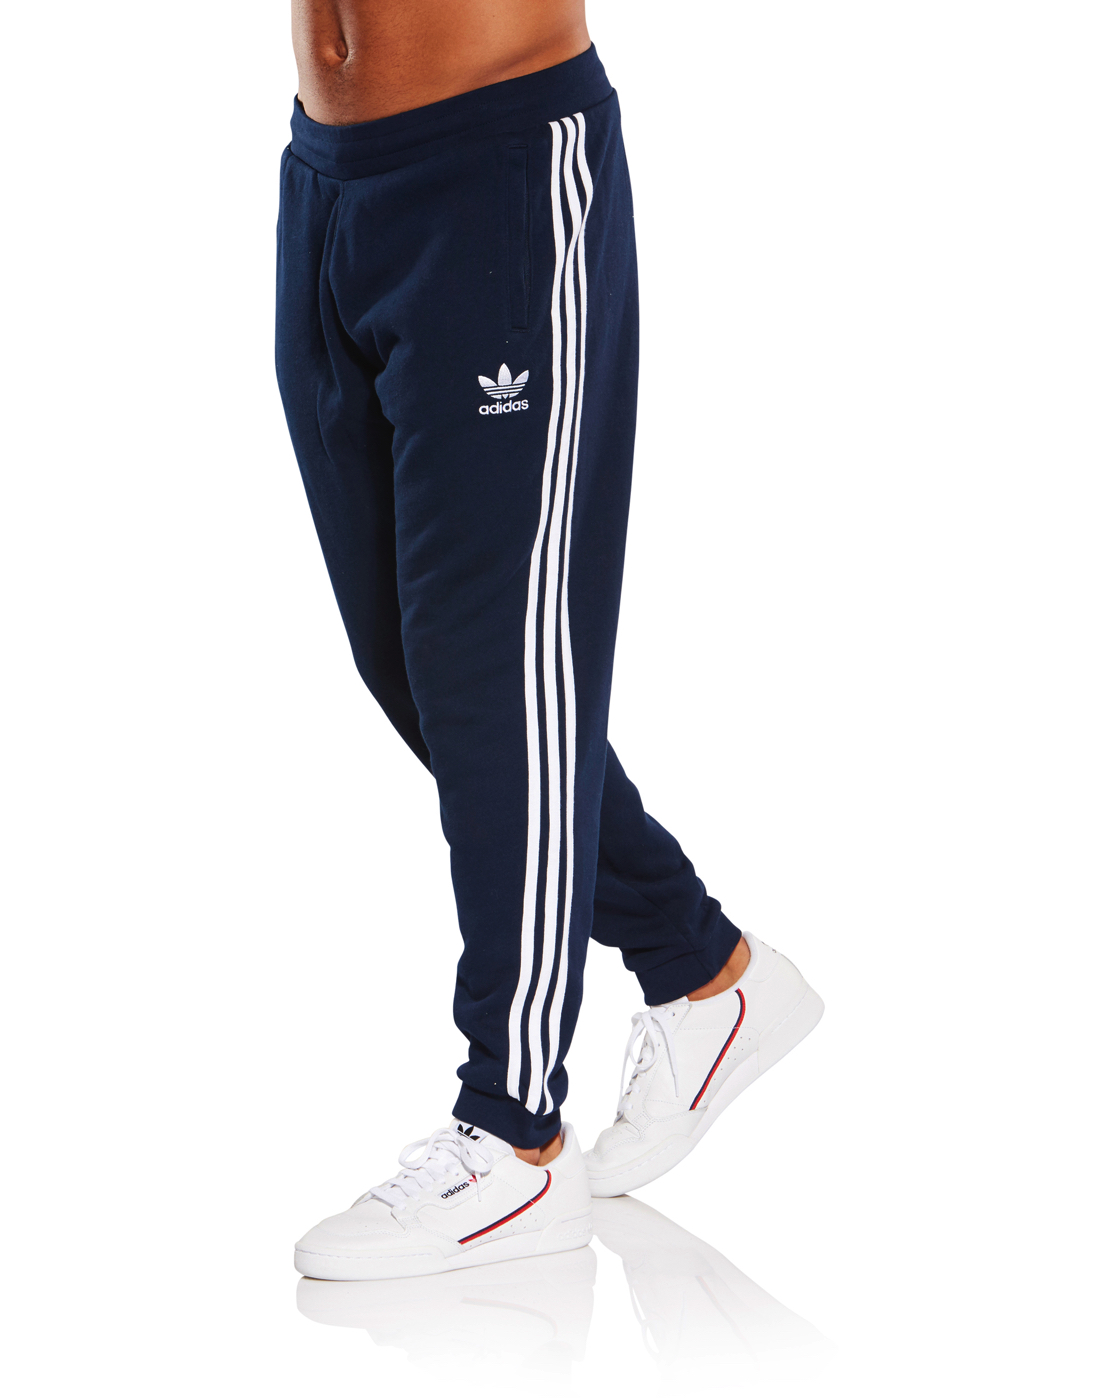 b1842216 adidas Originals Mens 3-Stripes Pant | Life Style Sports